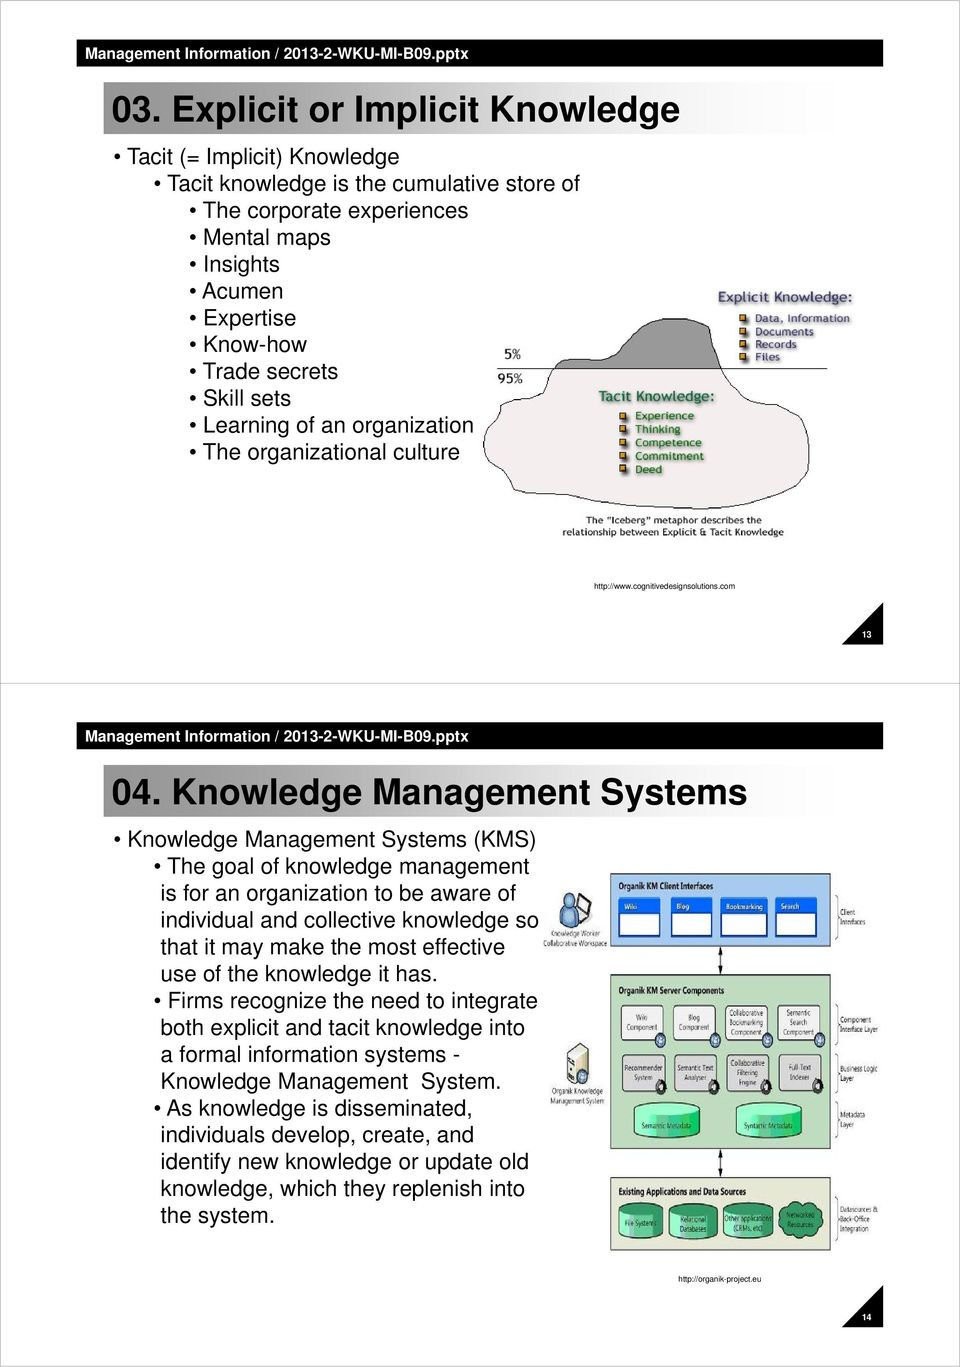 Knowledge Management Systems Knowledge Management Systems (KMS) The goal of knowledge management is for an organization to be aware of individual and collective knowledge so that it may make the most